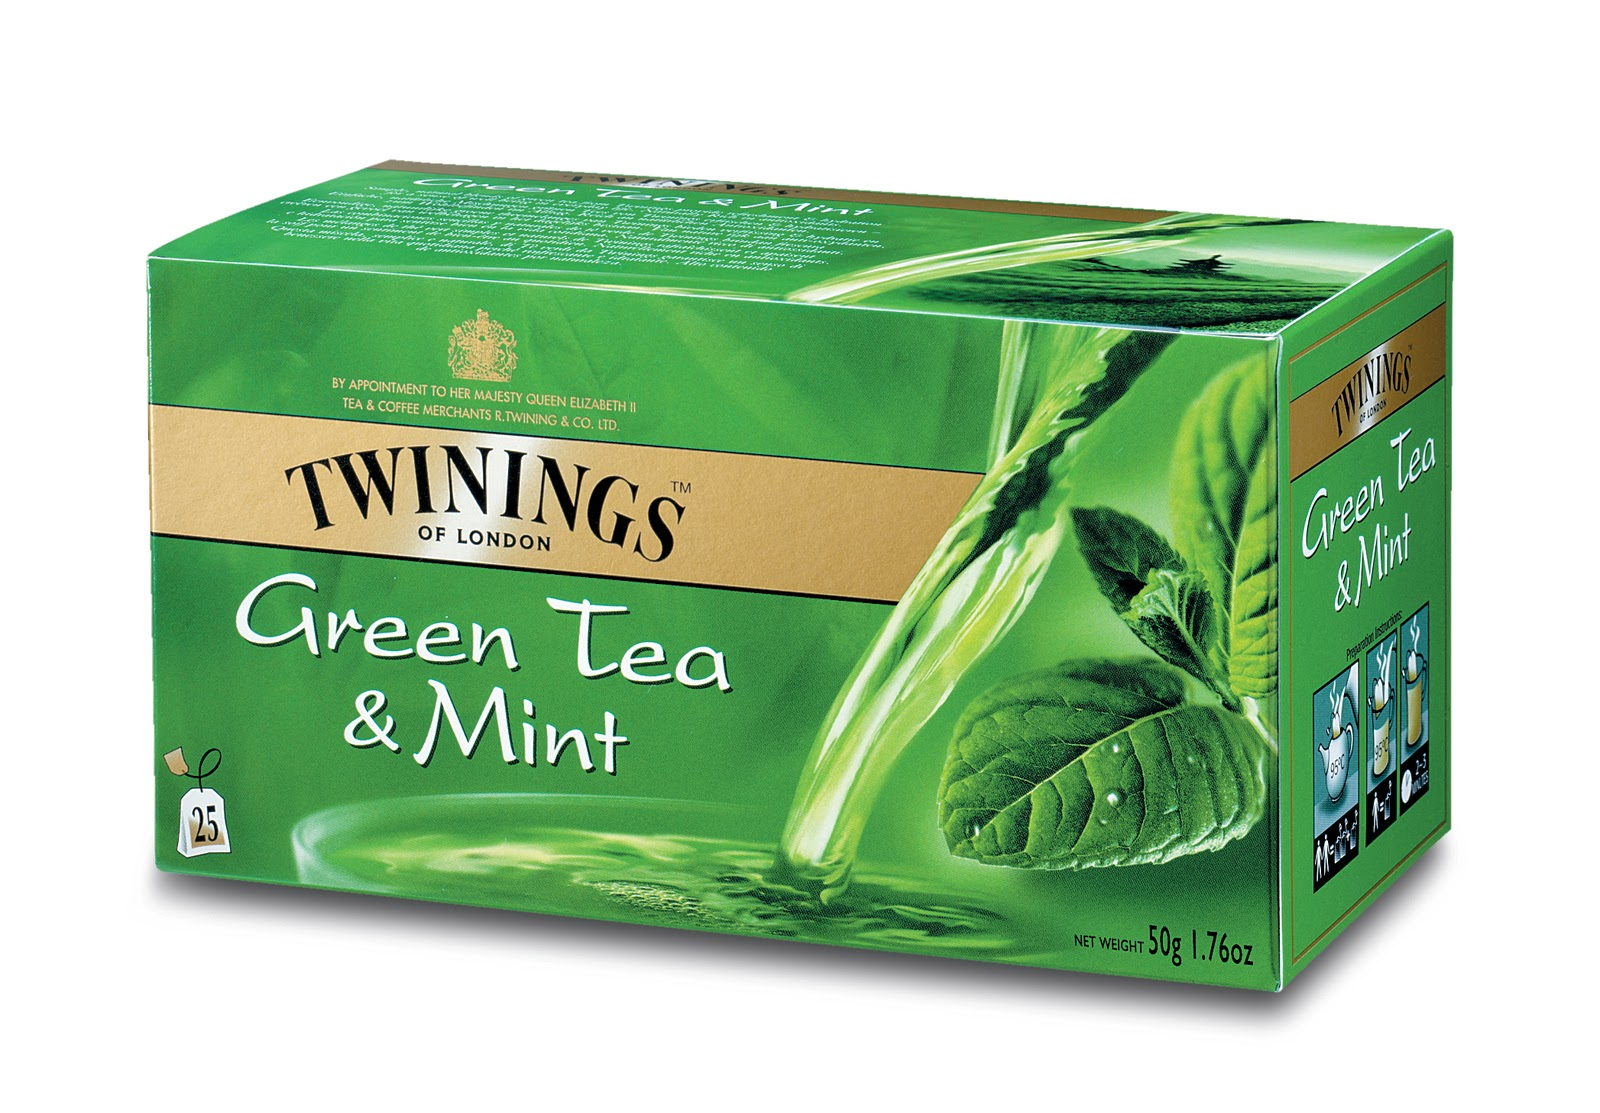 Twinings Green Tea And Mint Review Twinings Green Tea And